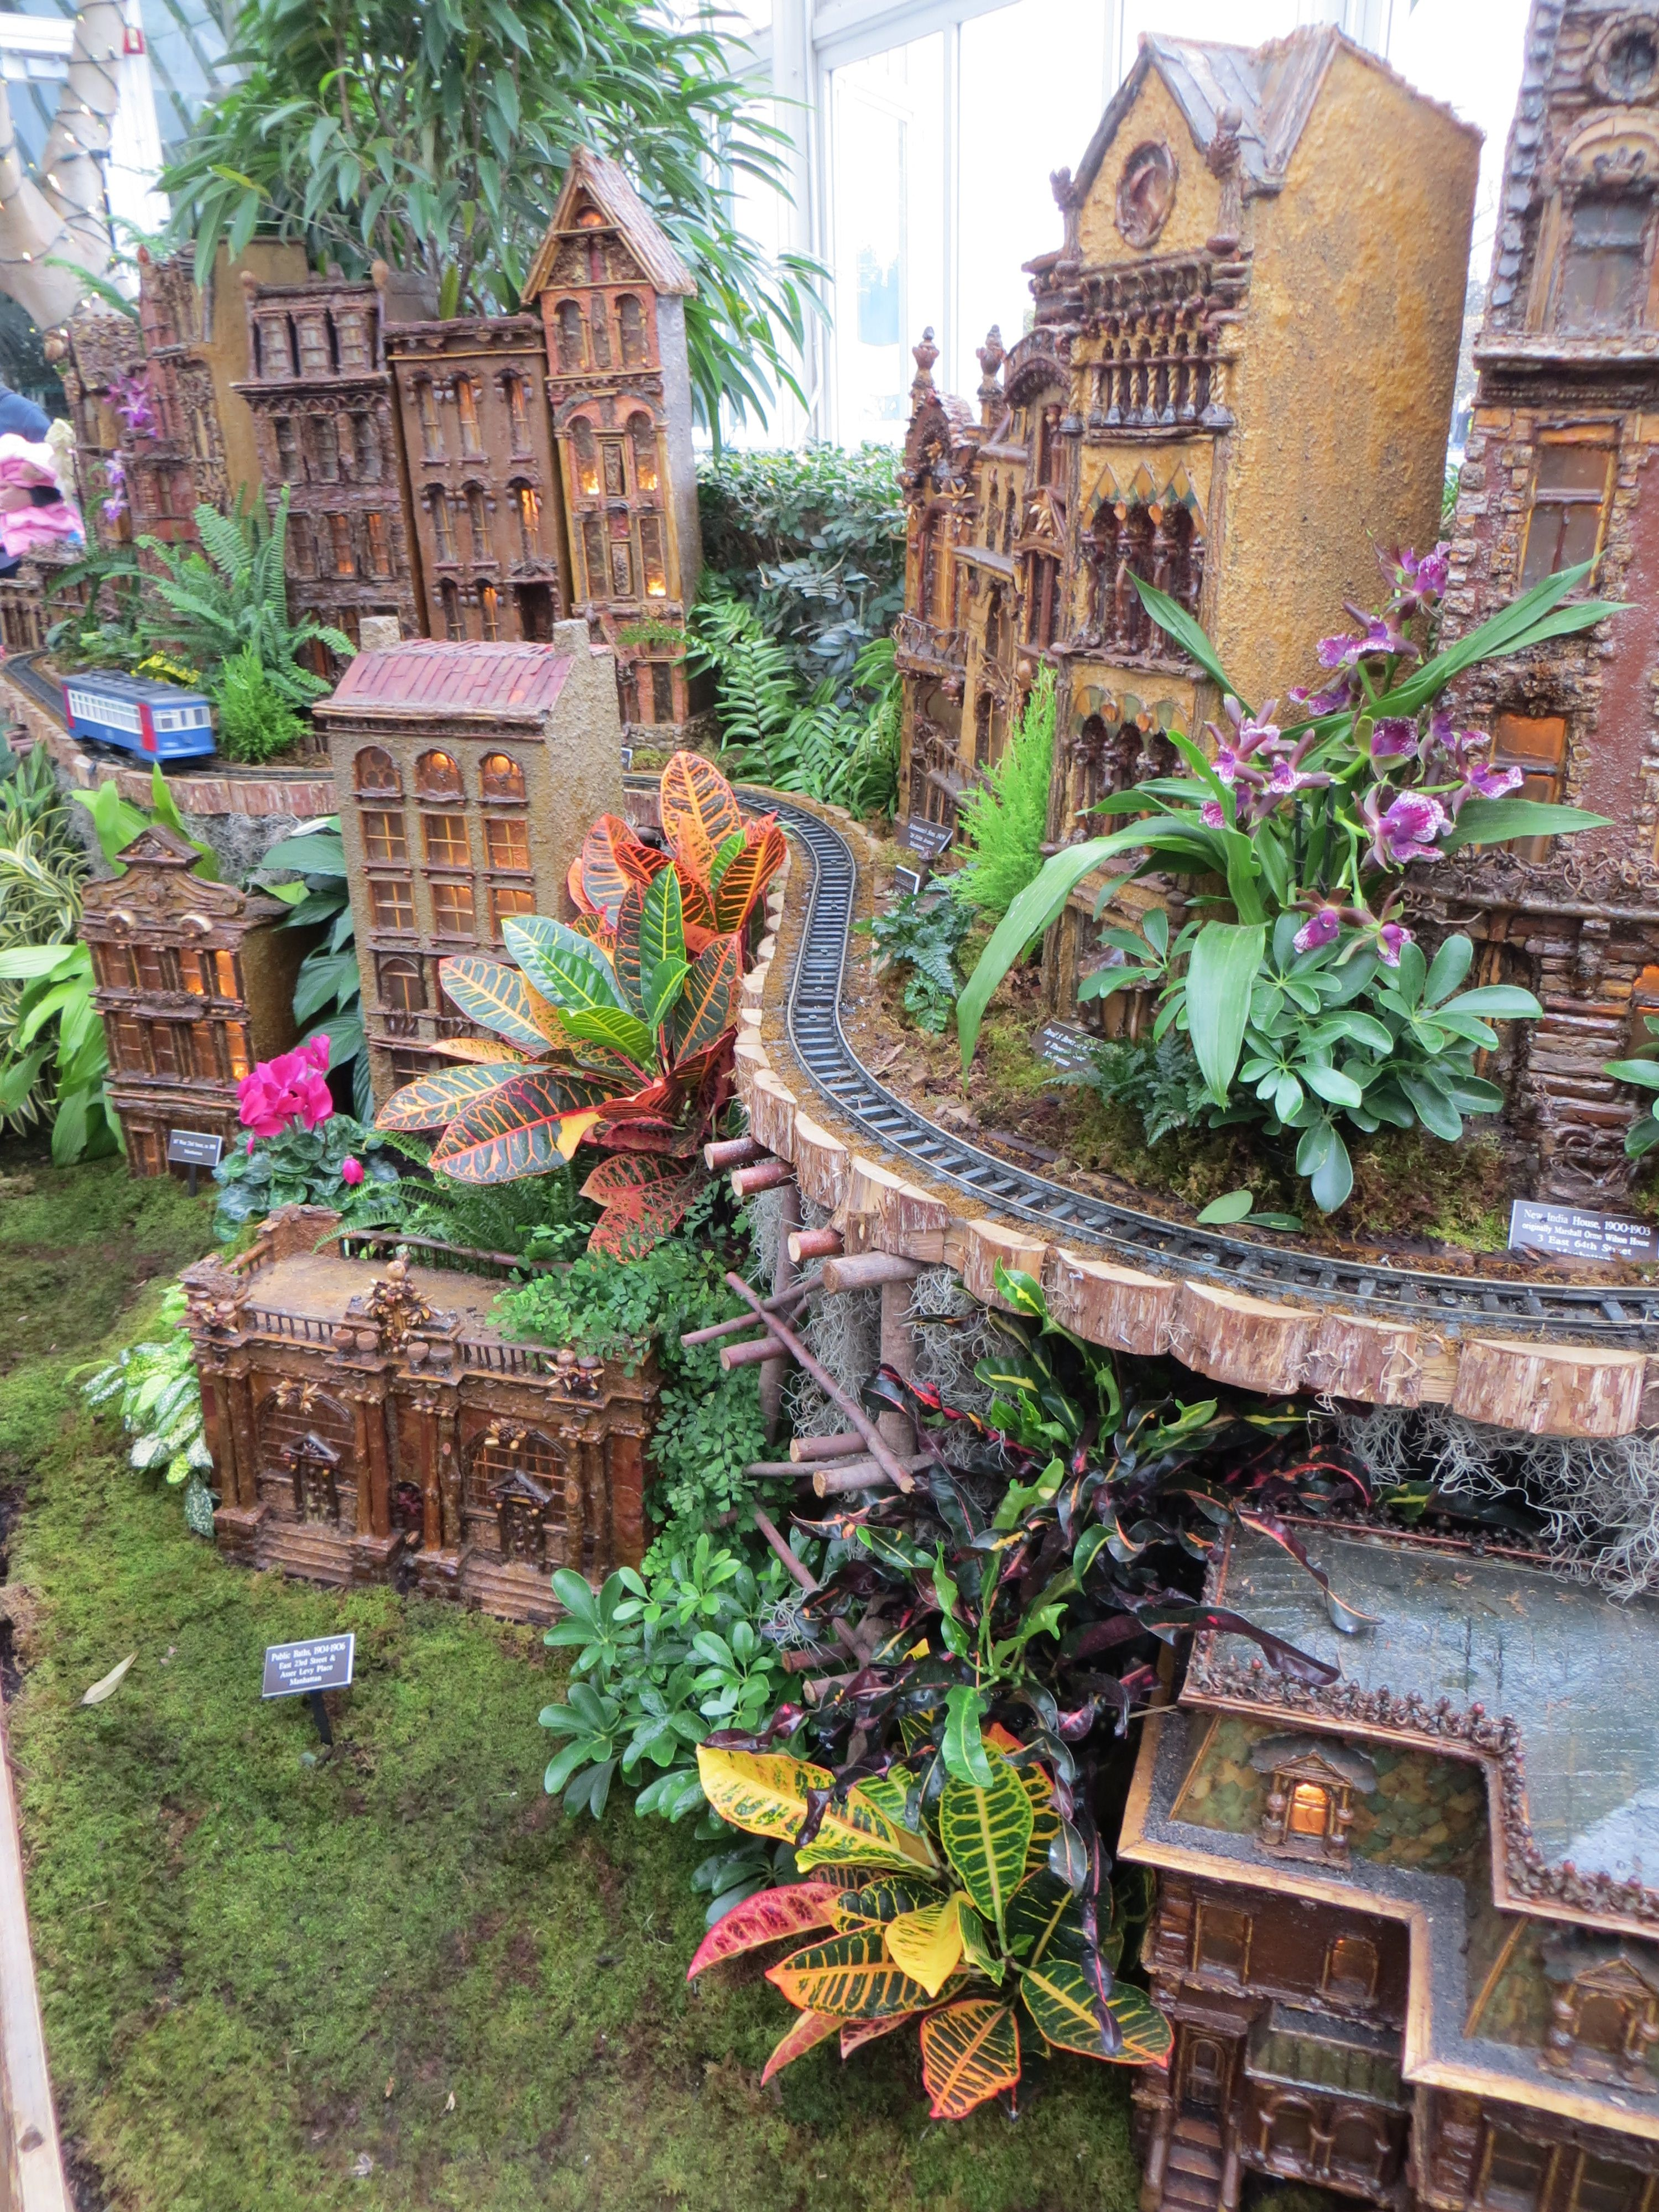 Holiday Train Show At Bronx Botanical Gardens